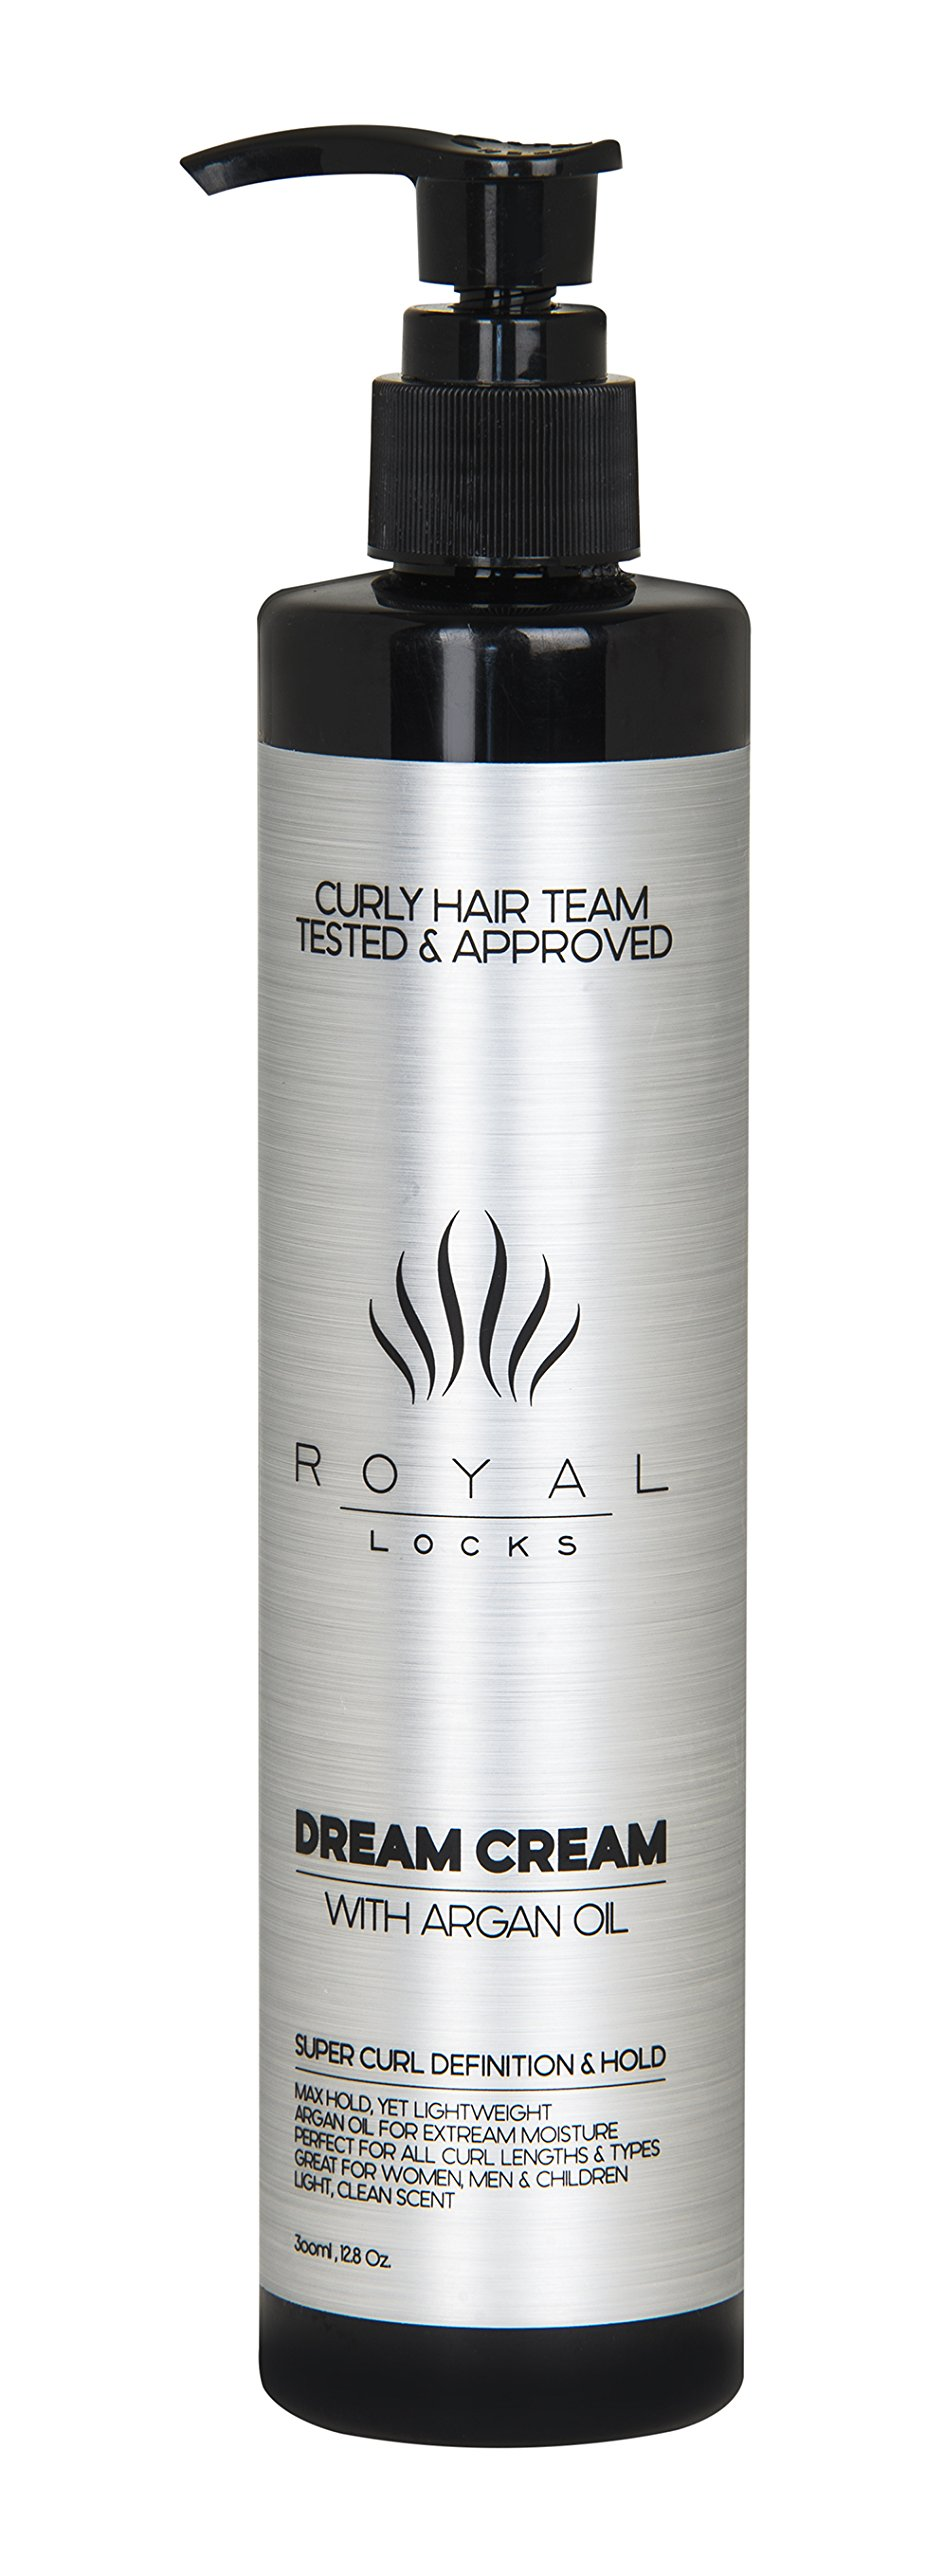 Dream Cream Ultra Curl Cream by Royal Locks. Curly Hair Product with Moroccan Argan Oil for Conditioning Anti Frizz Super Hold Defining and Styling Curl Keeper for All Curl Types.